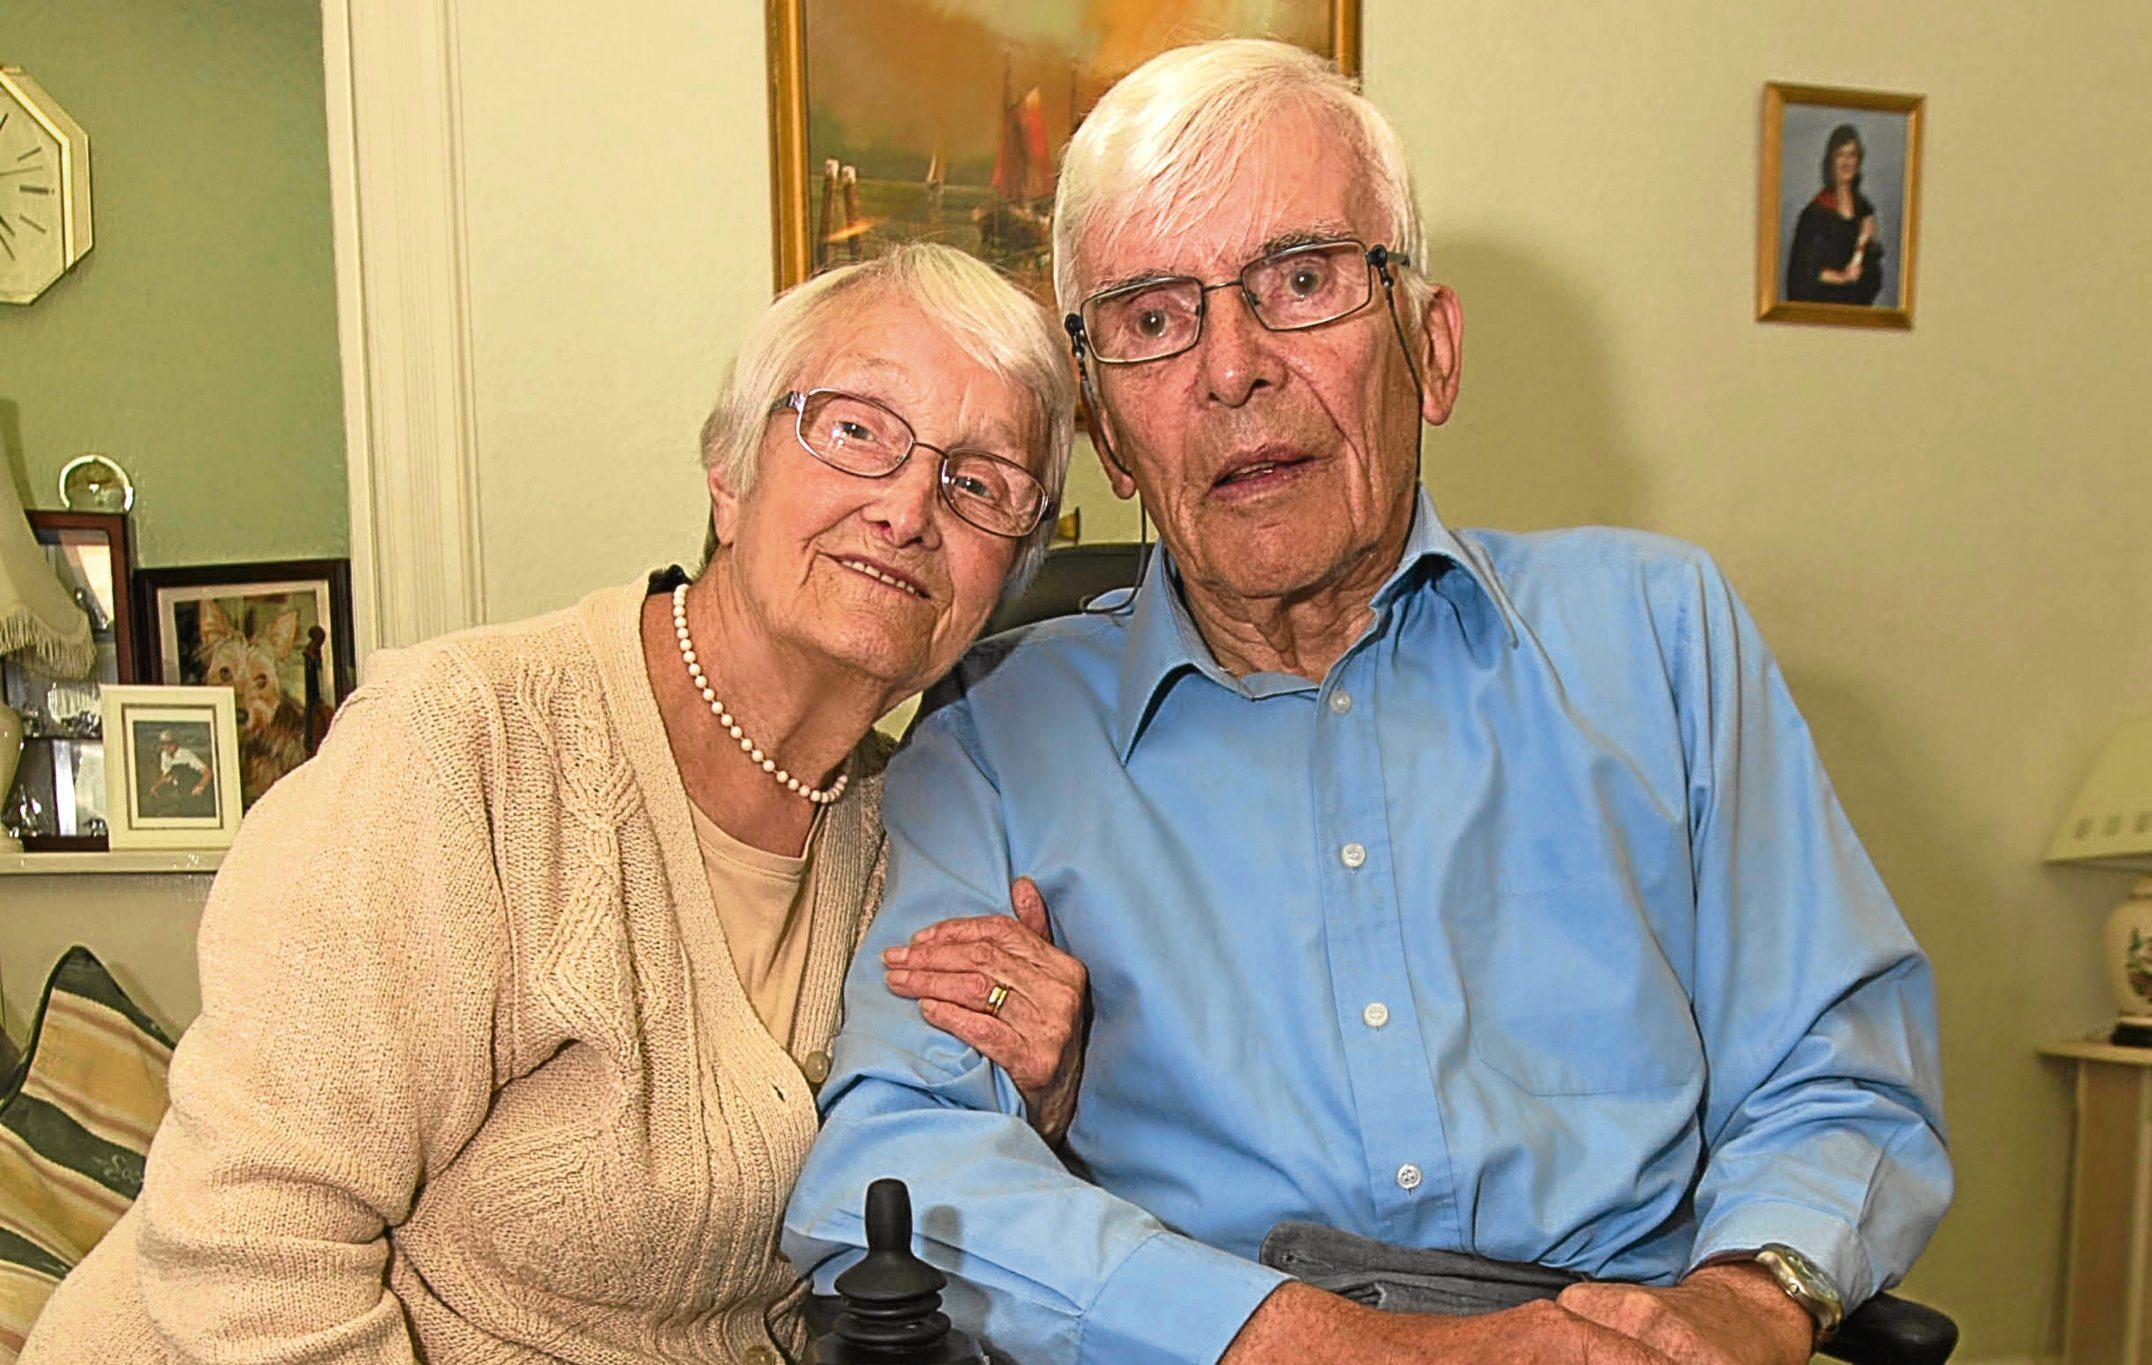 Frank and Nessie Marshall have just celebrated their 60th wedding anniversary (Andrew Cawley / DC Thomson)